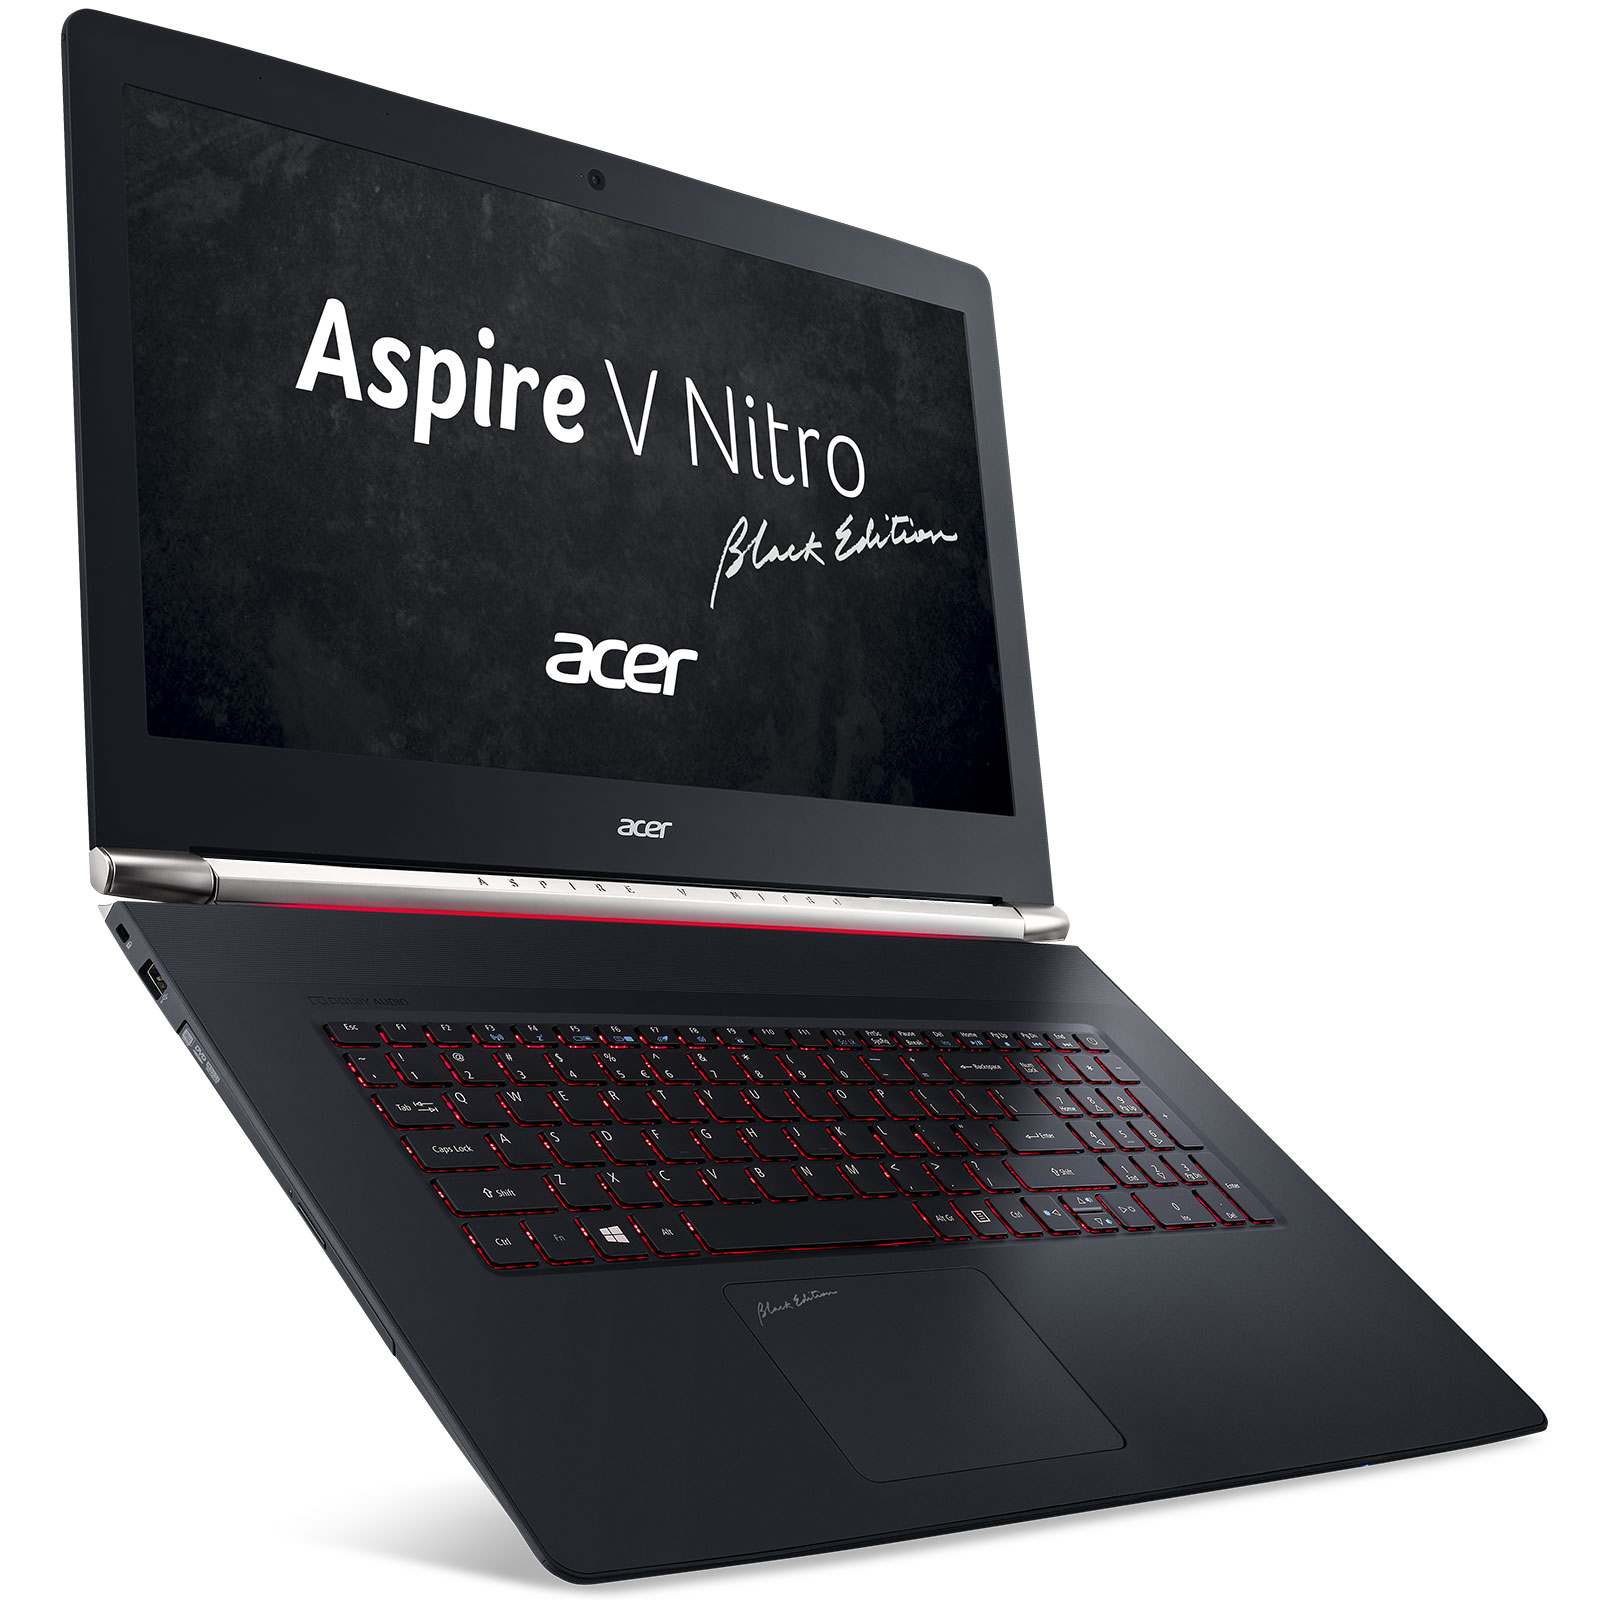 "PC portable Acer Aspire V Nitro VN7-792G-55RM Black Edition Intel Core i5-6300HQ 8 Go SSD 128 Go + HDD 1 To 17.3"" LED Full HD NVIDIA GeForce GTX 960M Graveur DVD Wi-Fi AC/Bluetooth Webcam Windows 10 Famille 64 bits"